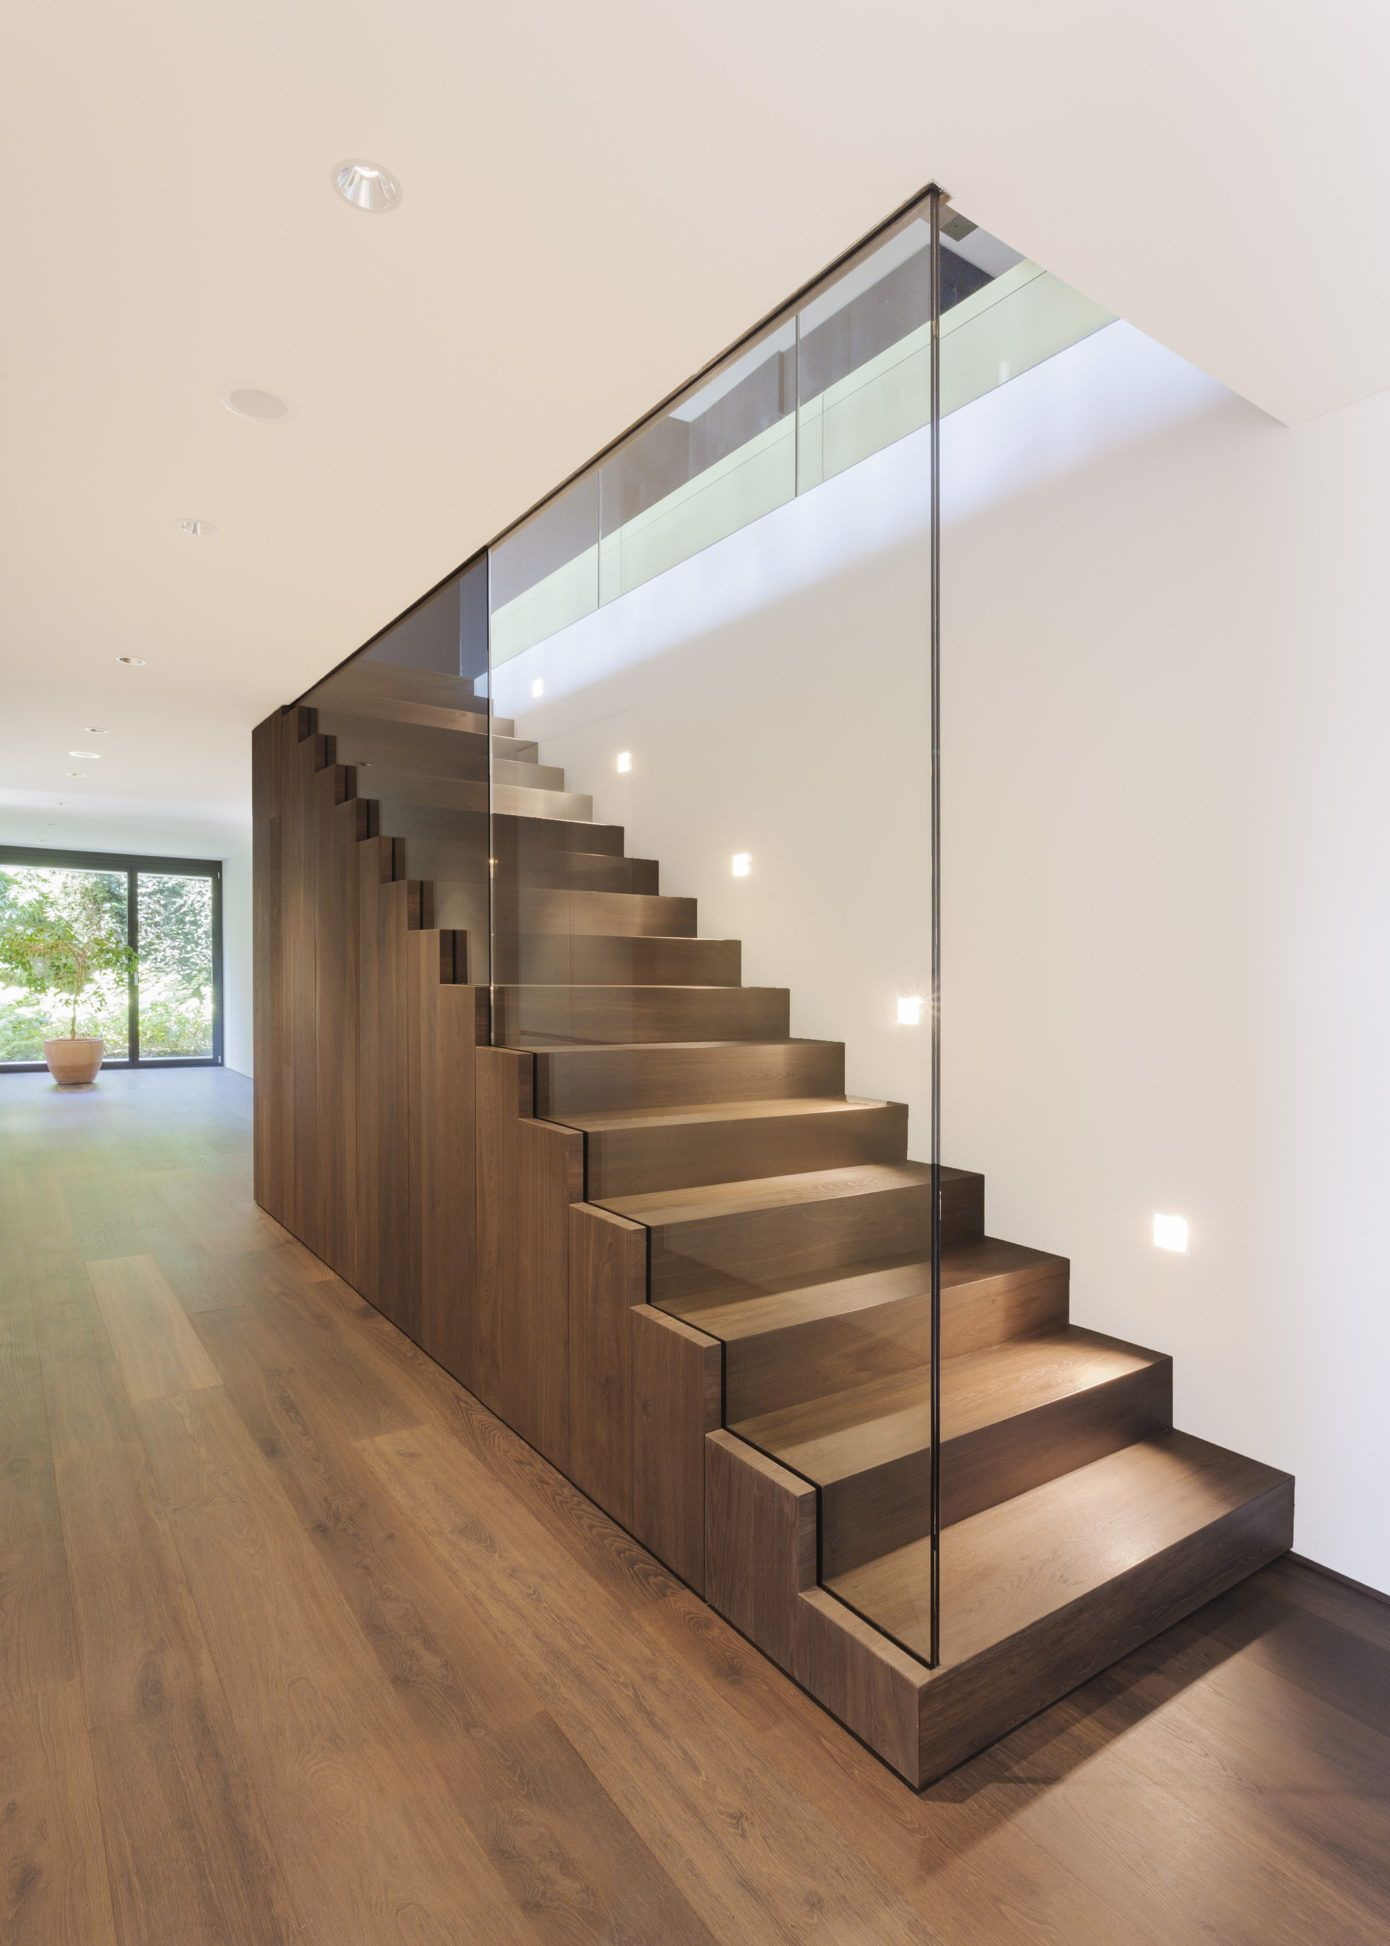 Best Alternative For Front Door Side Of Stairs Glass Wall 400 x 300